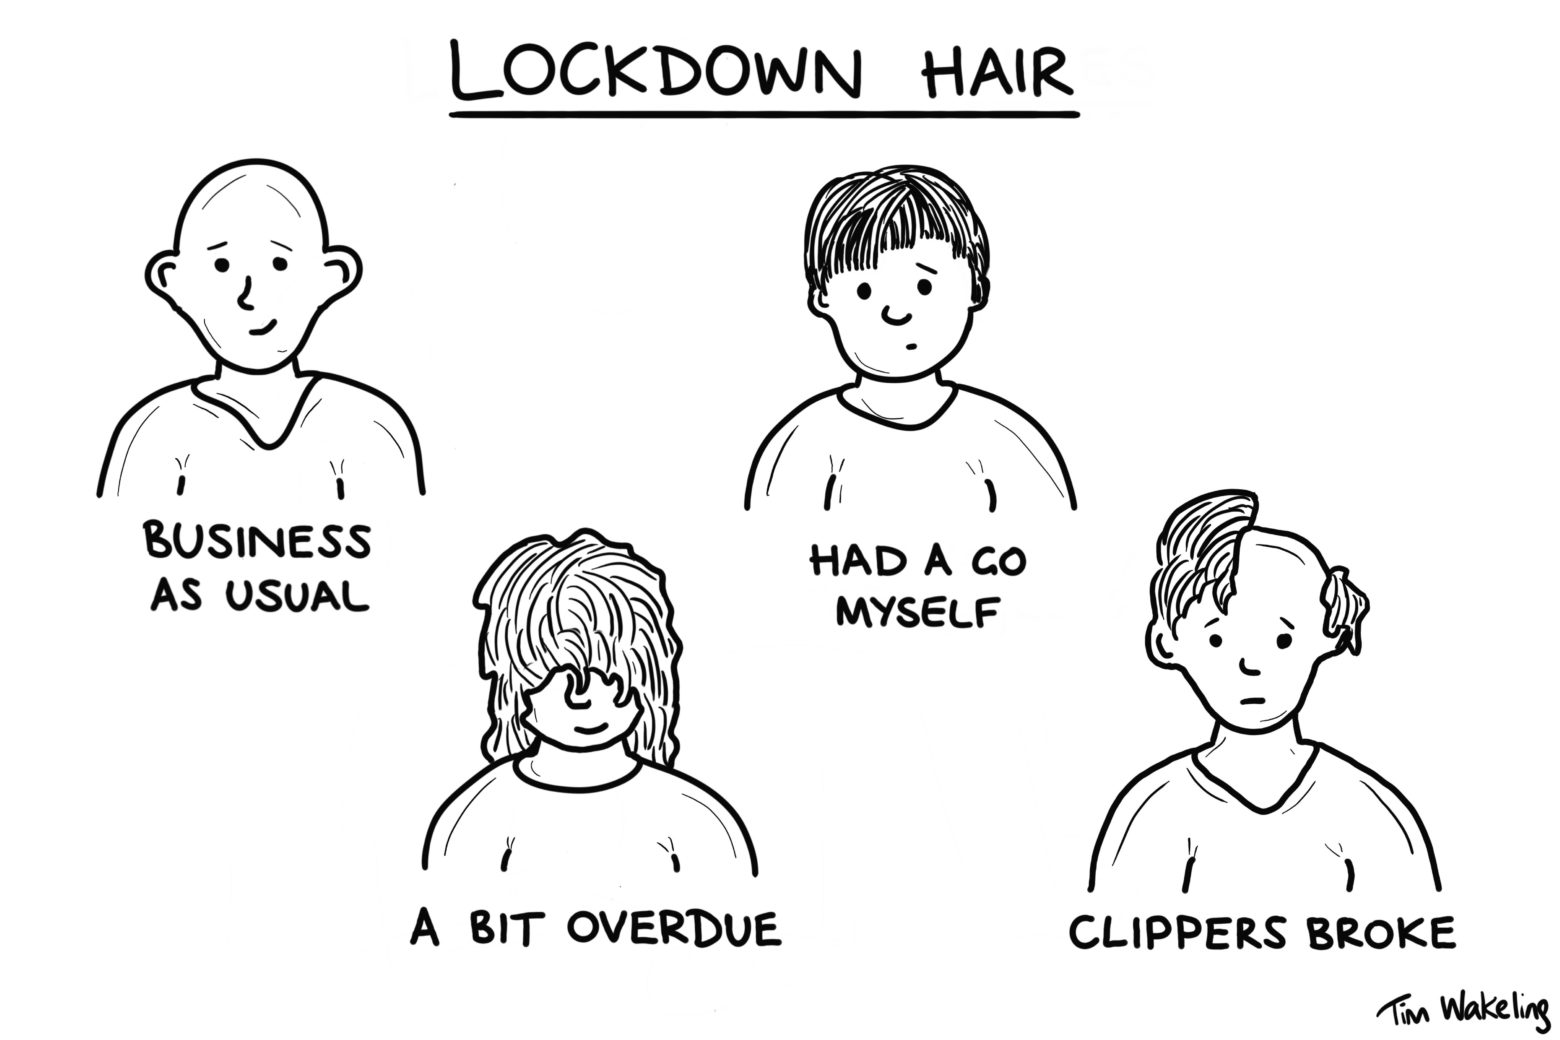 Lockdown hair